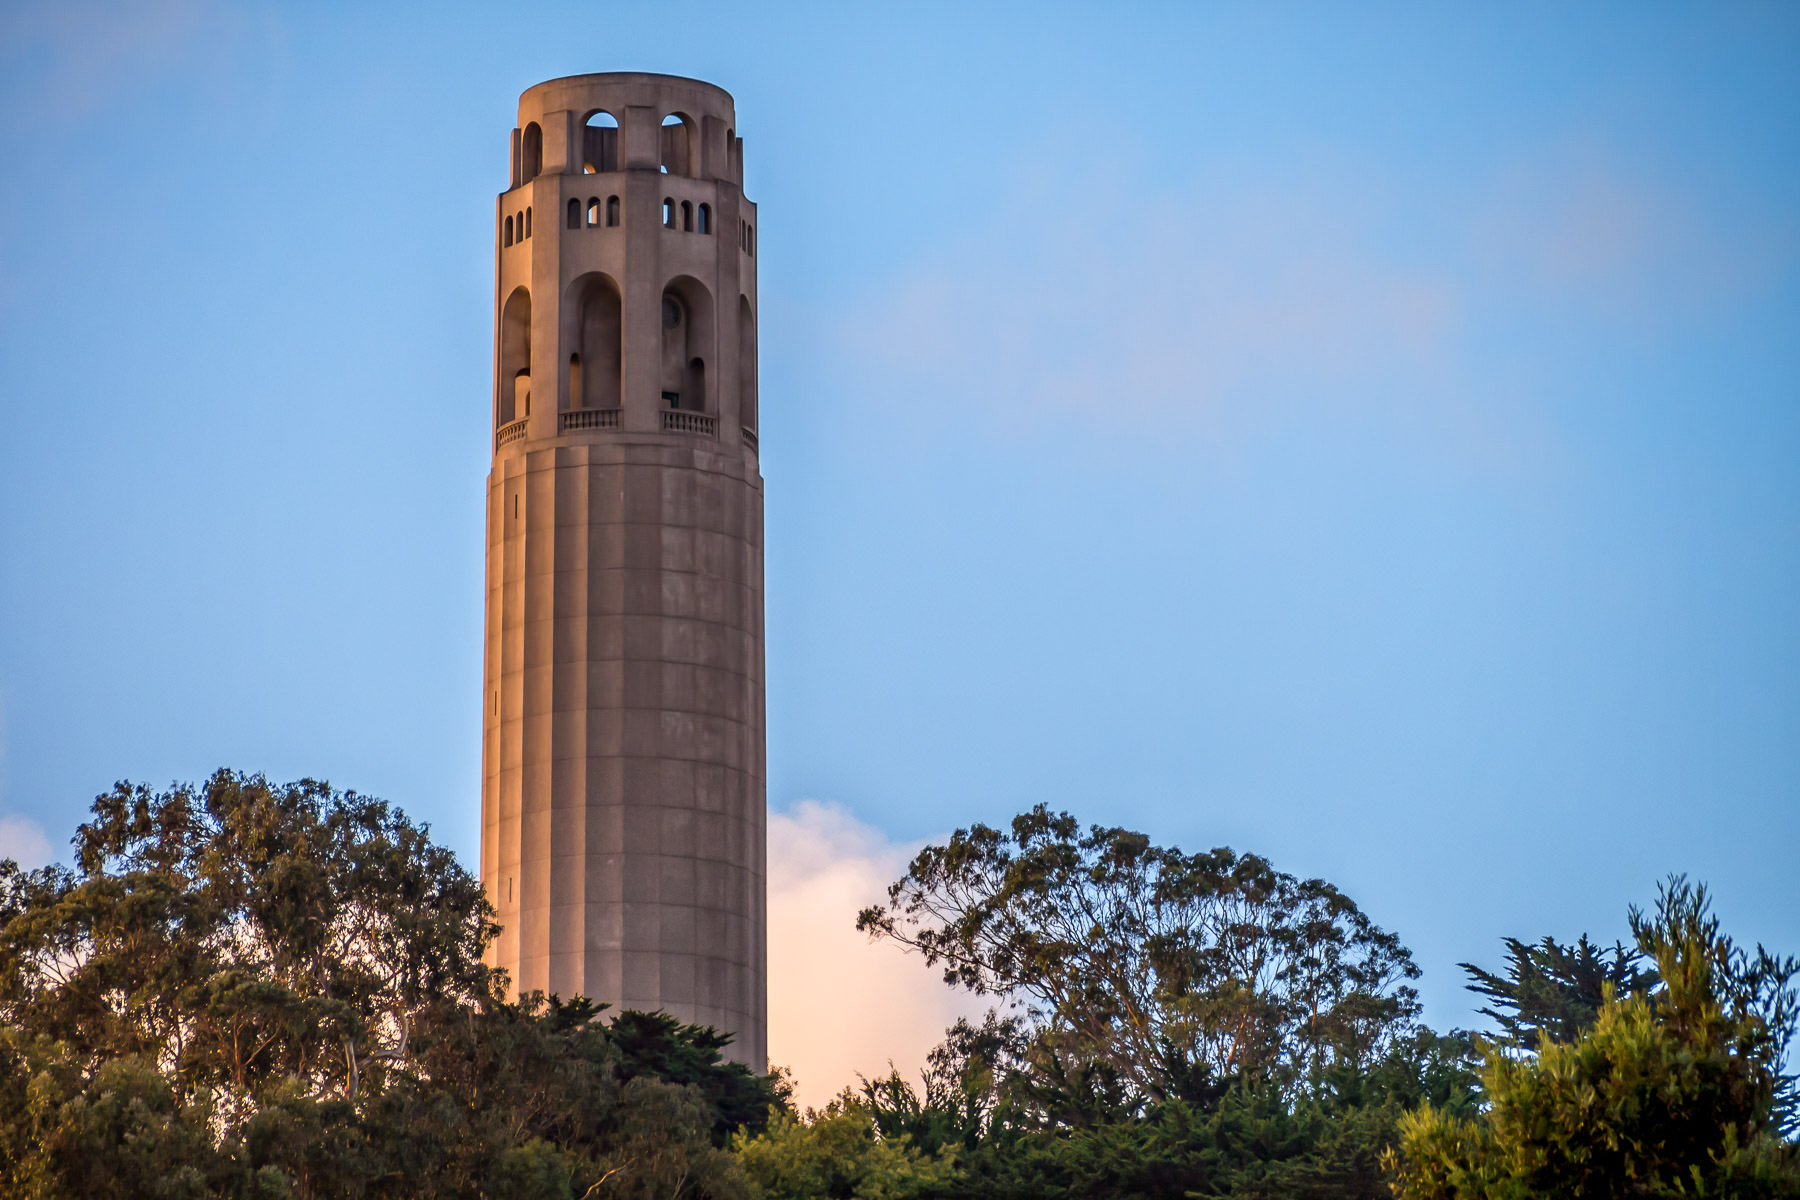 San Francisco's 210-foot-tall Coit Tower rises above the surrounding trees atop Telegraph Hill.